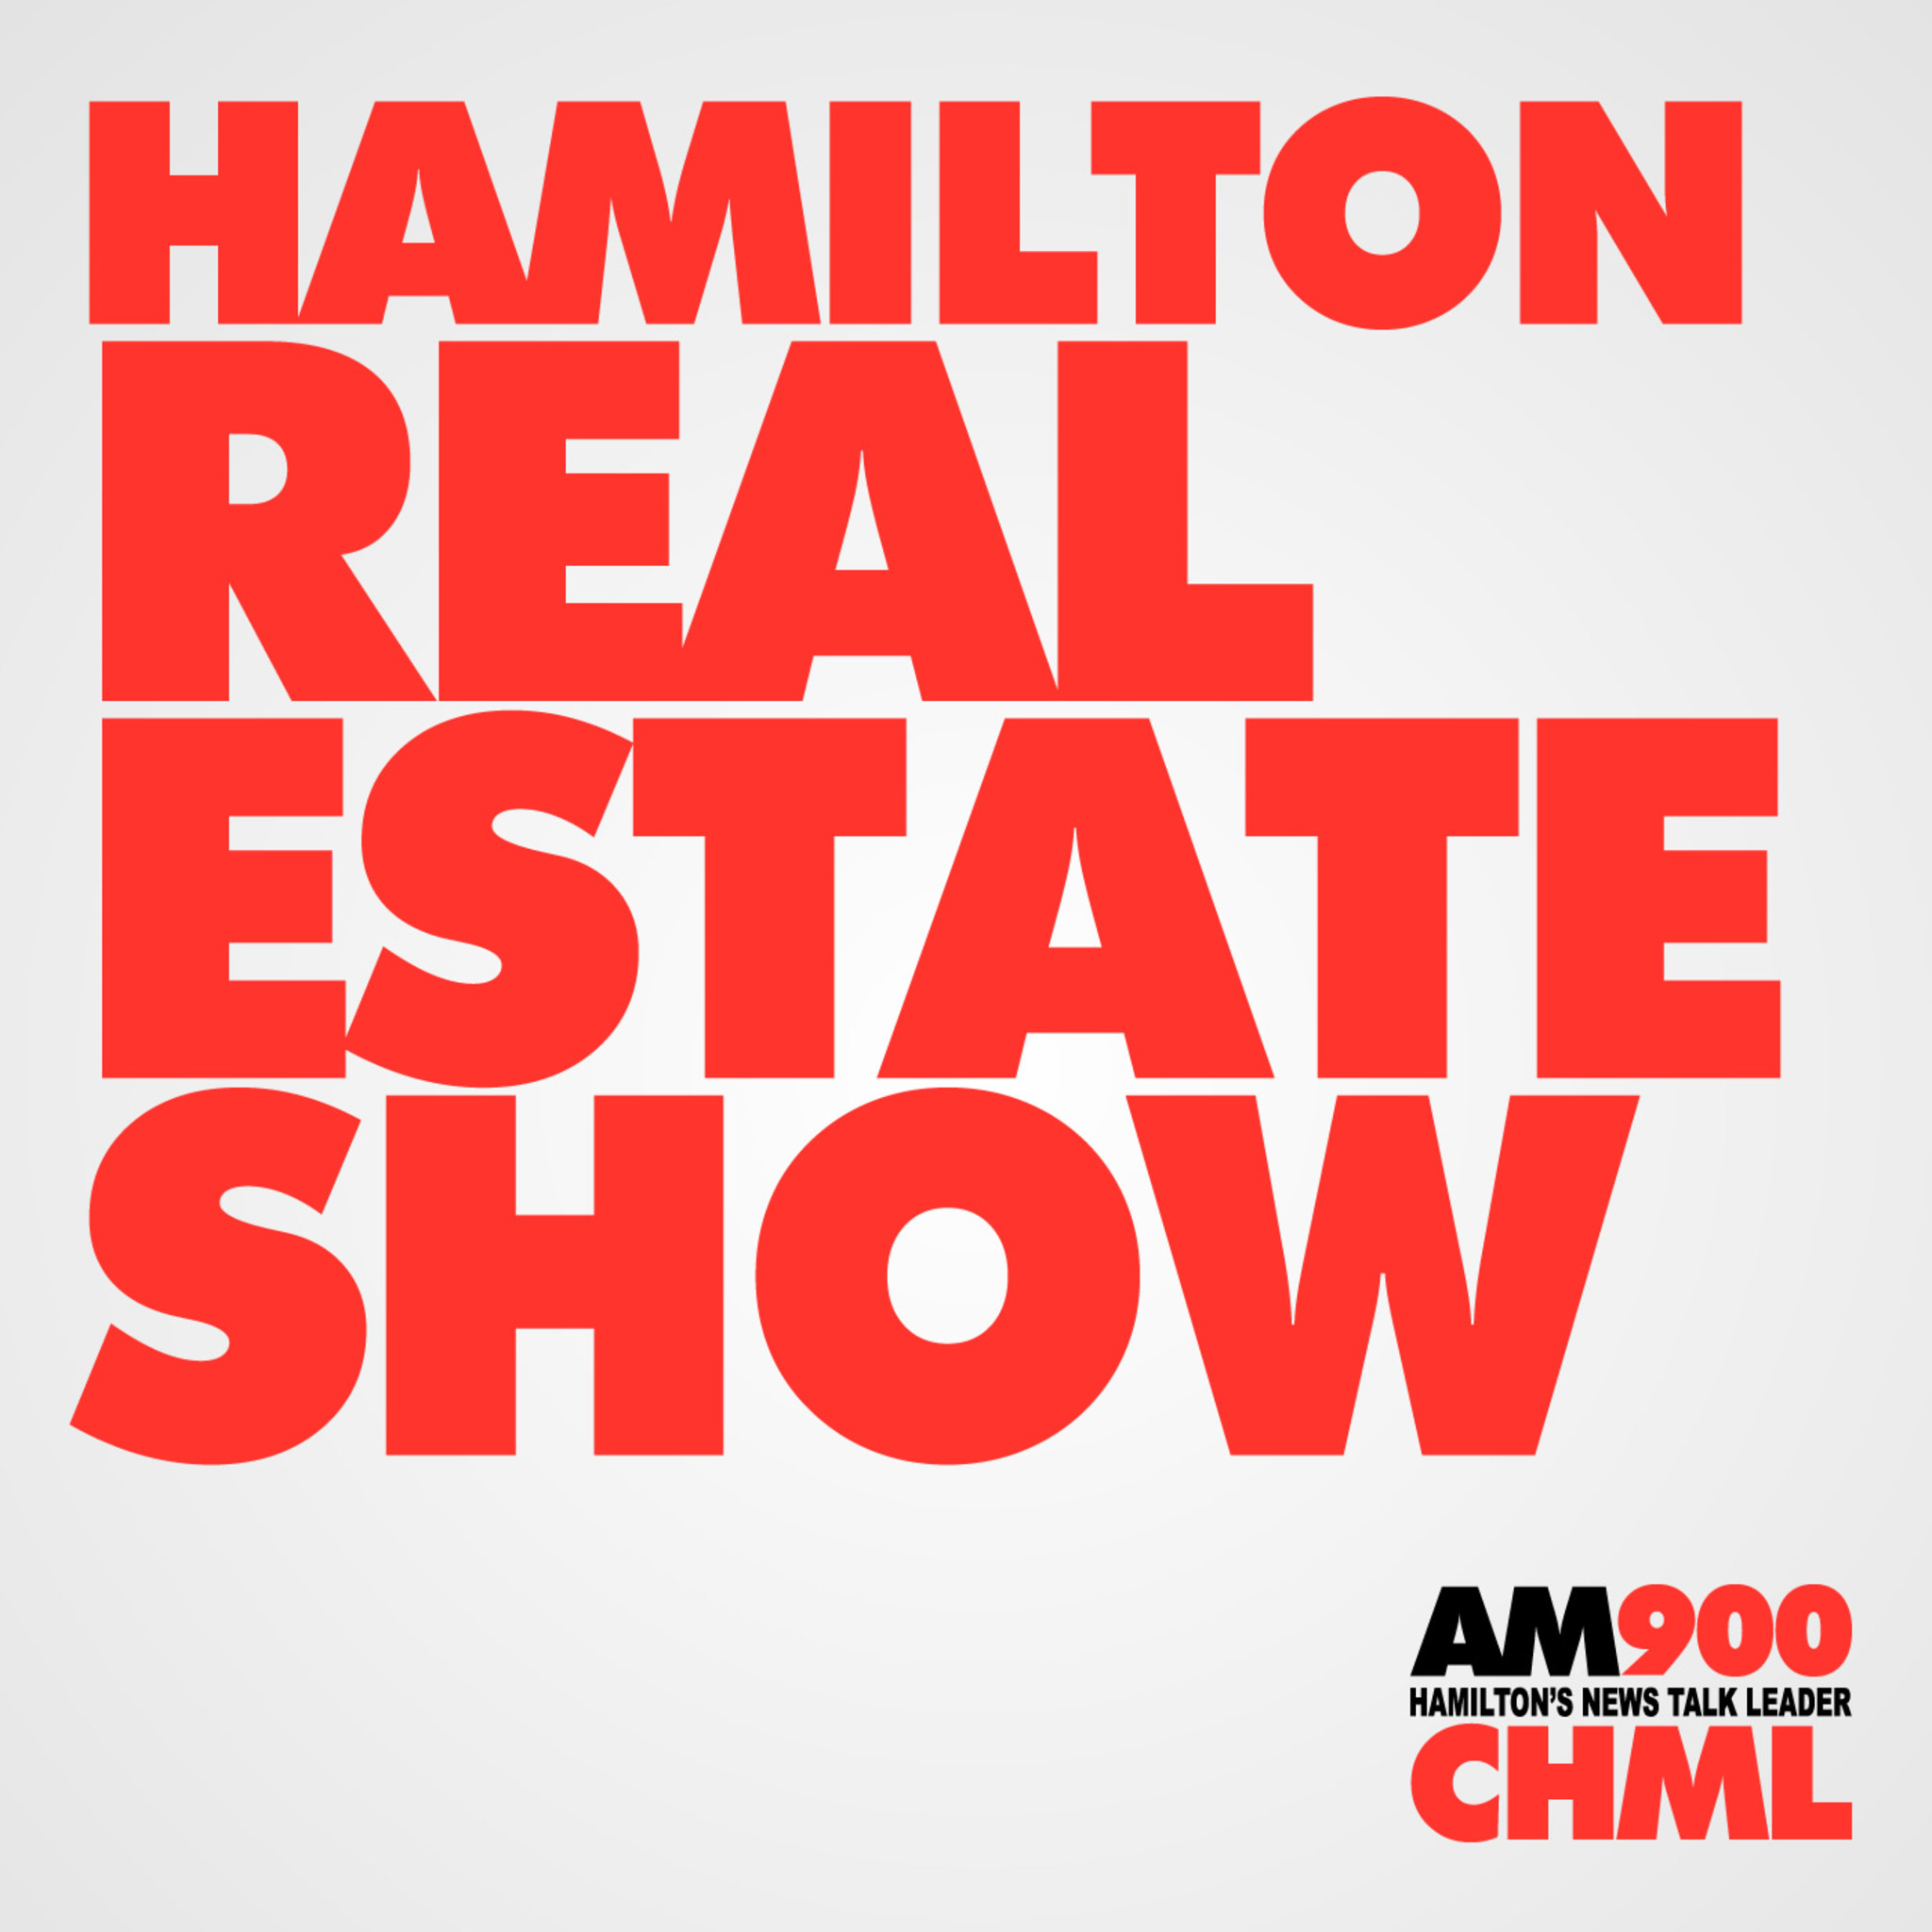 The Hamilton Real Estate Show